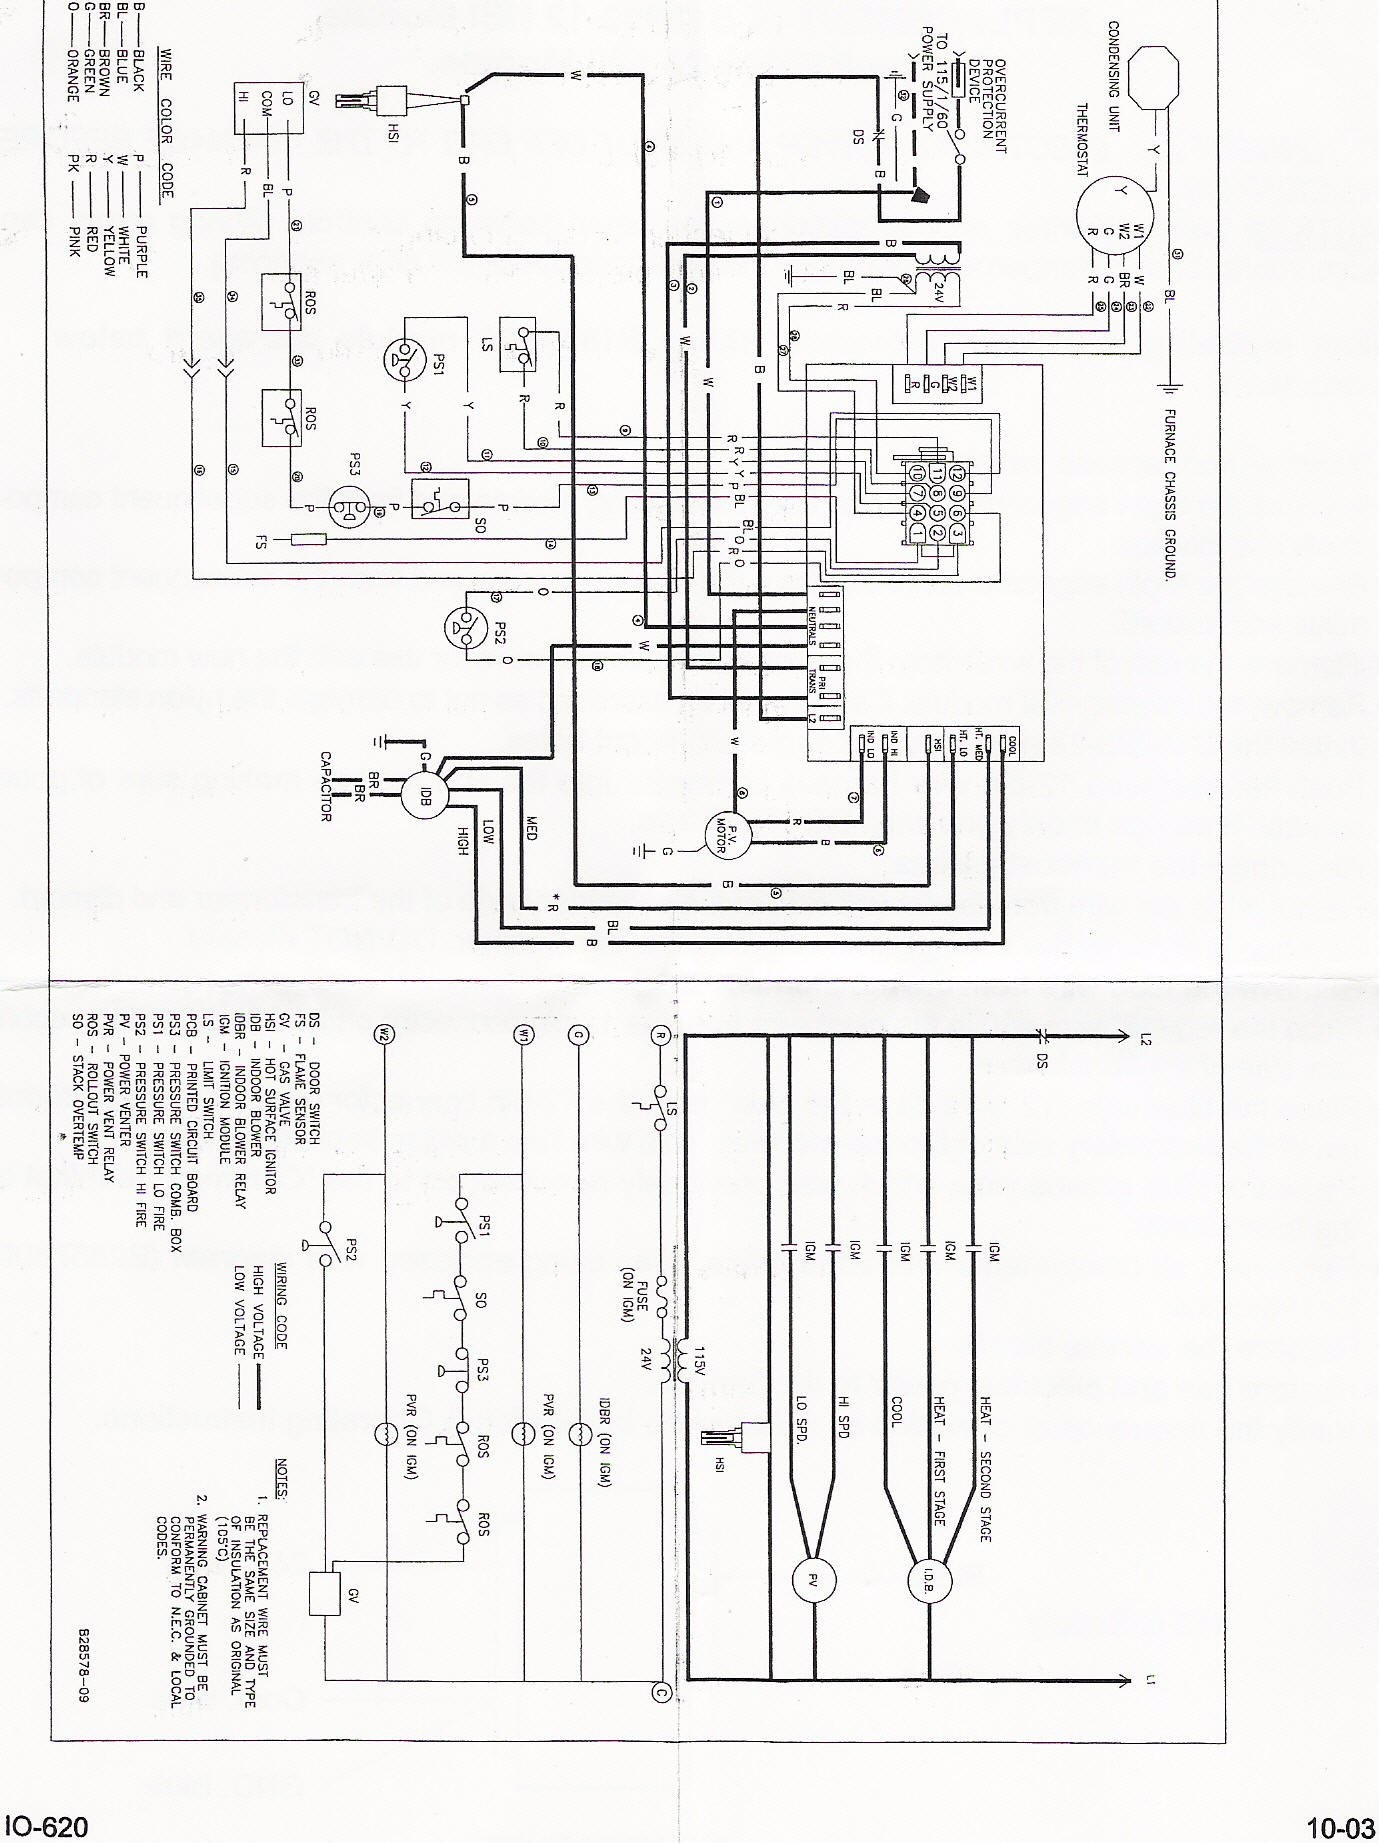 goodman defrost board wiring diagram | free wiring diagram pioneer wiring harness mute wire